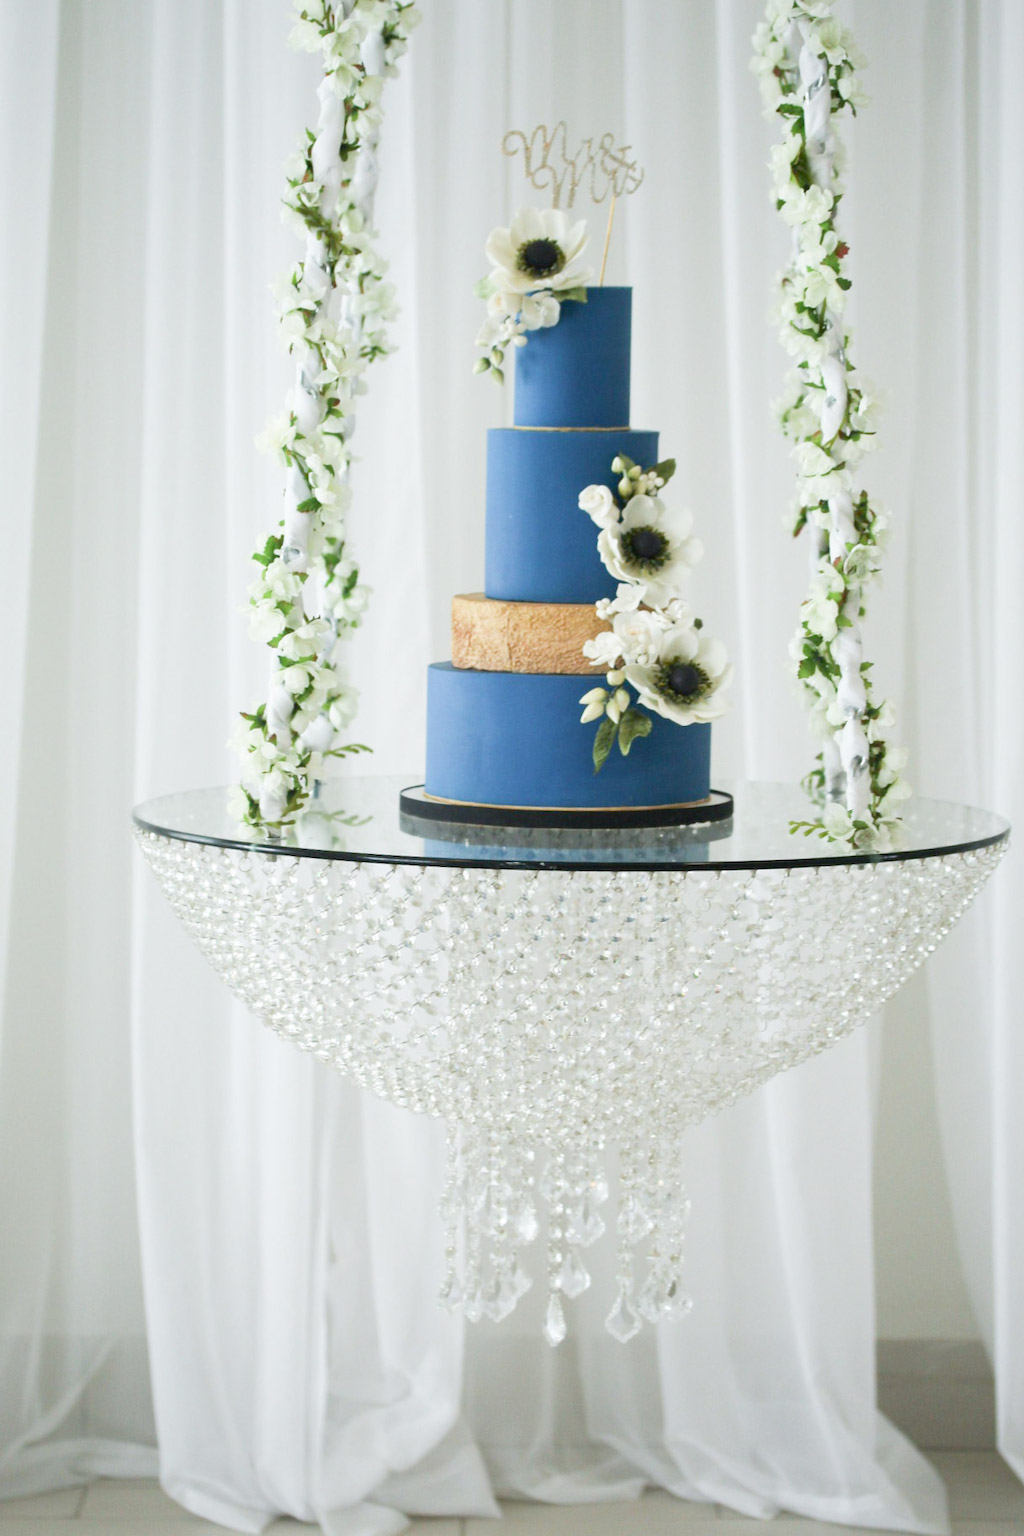 Tampa Wedding Cakes and Desserts | Tampa Bay Cake Company | Dusty Blue and Gold Round Wedding Cake on Hanging Cake Stand with White Floral Accent